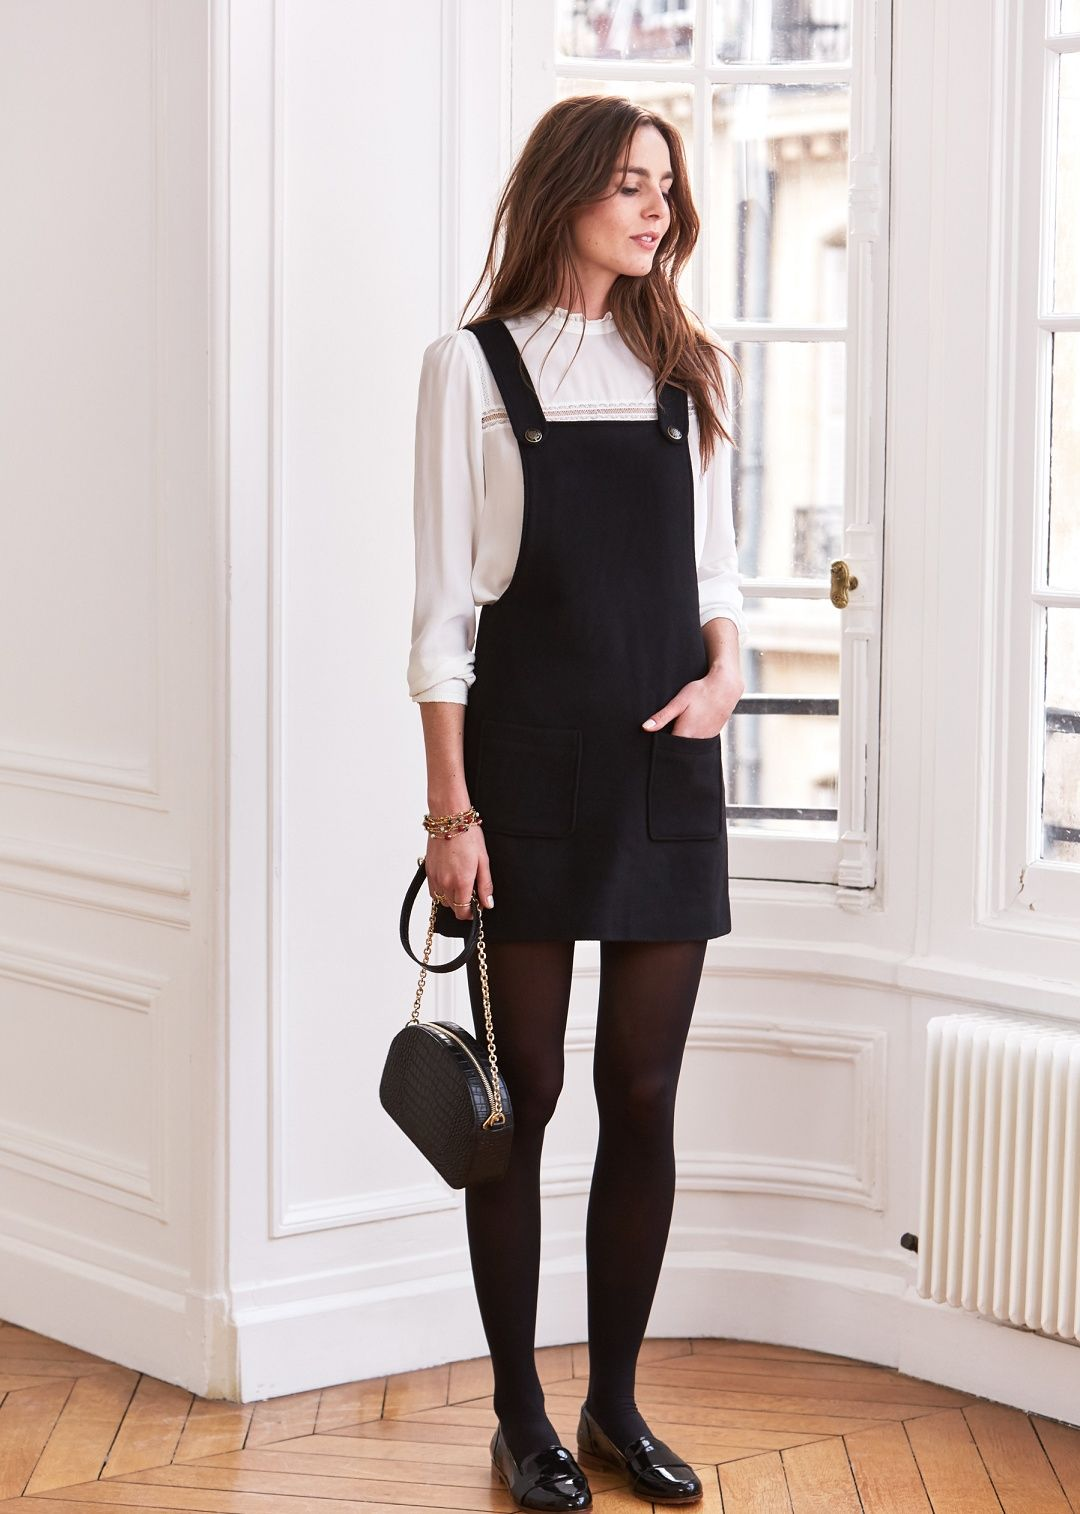 Sezaneus winter collection launched today dungaree dress keep in